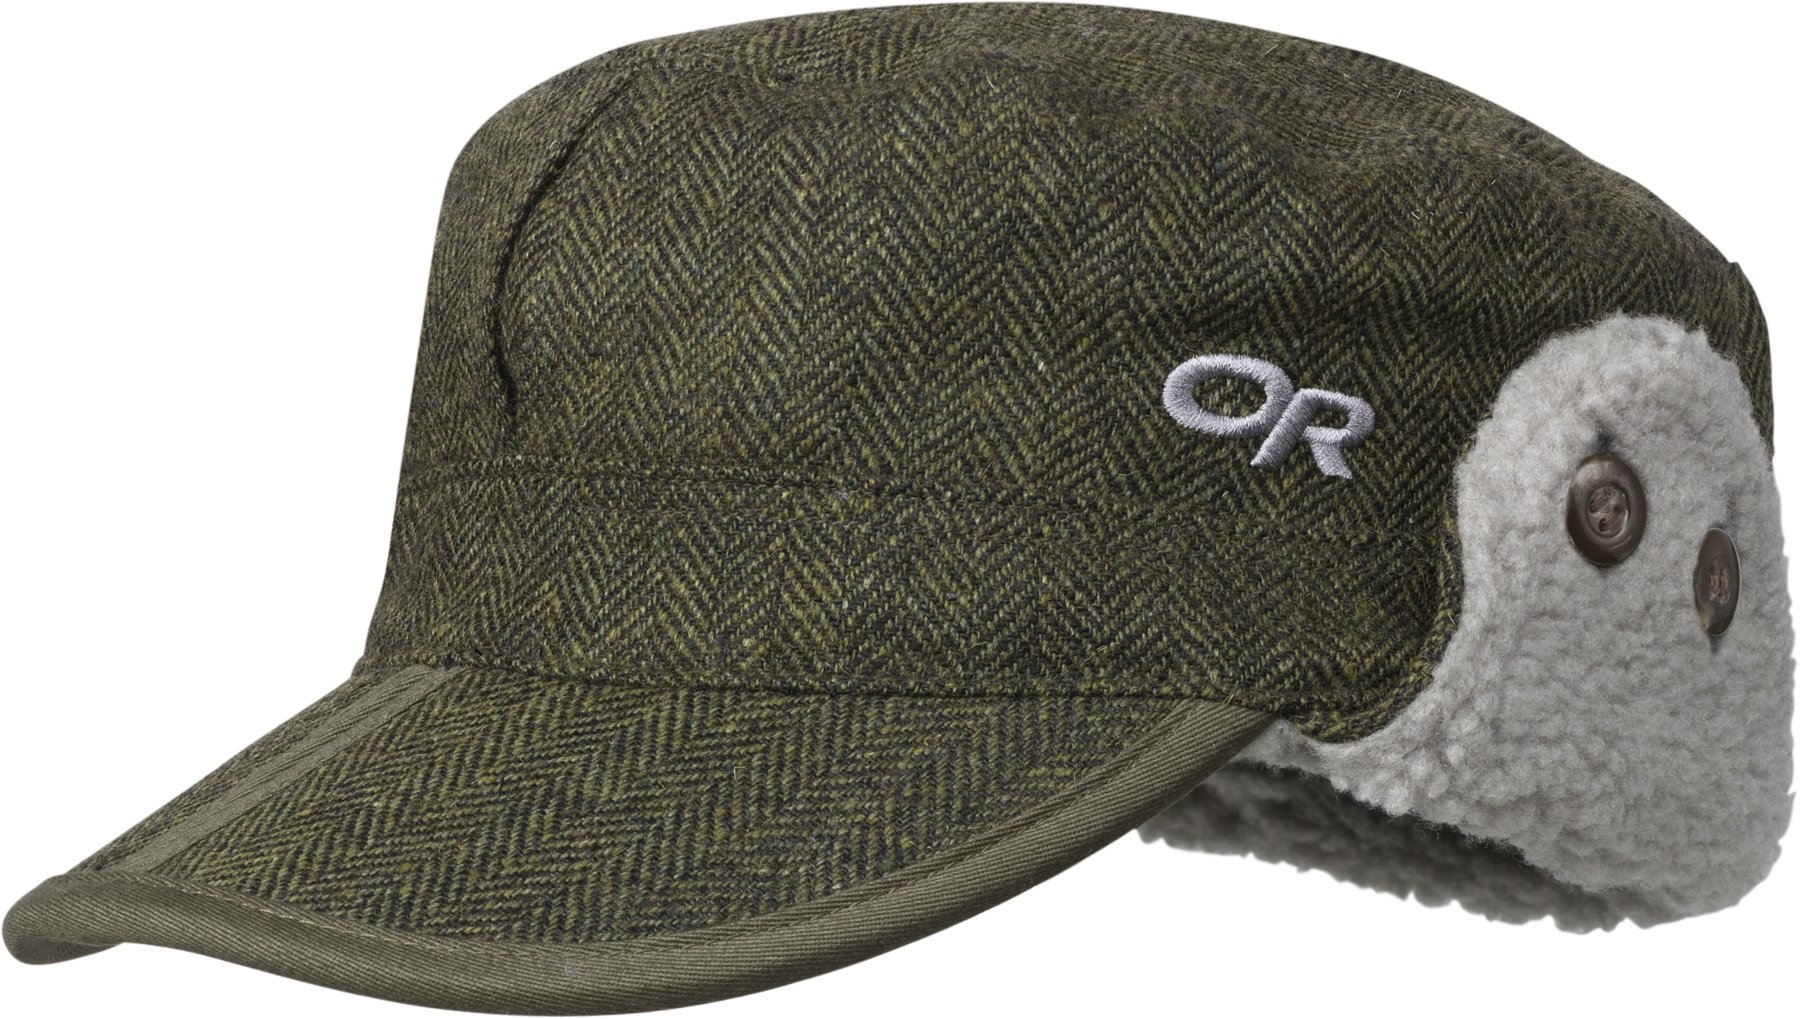 Outdoor Research Yukon Cap, Peat Herringbone, X-Large